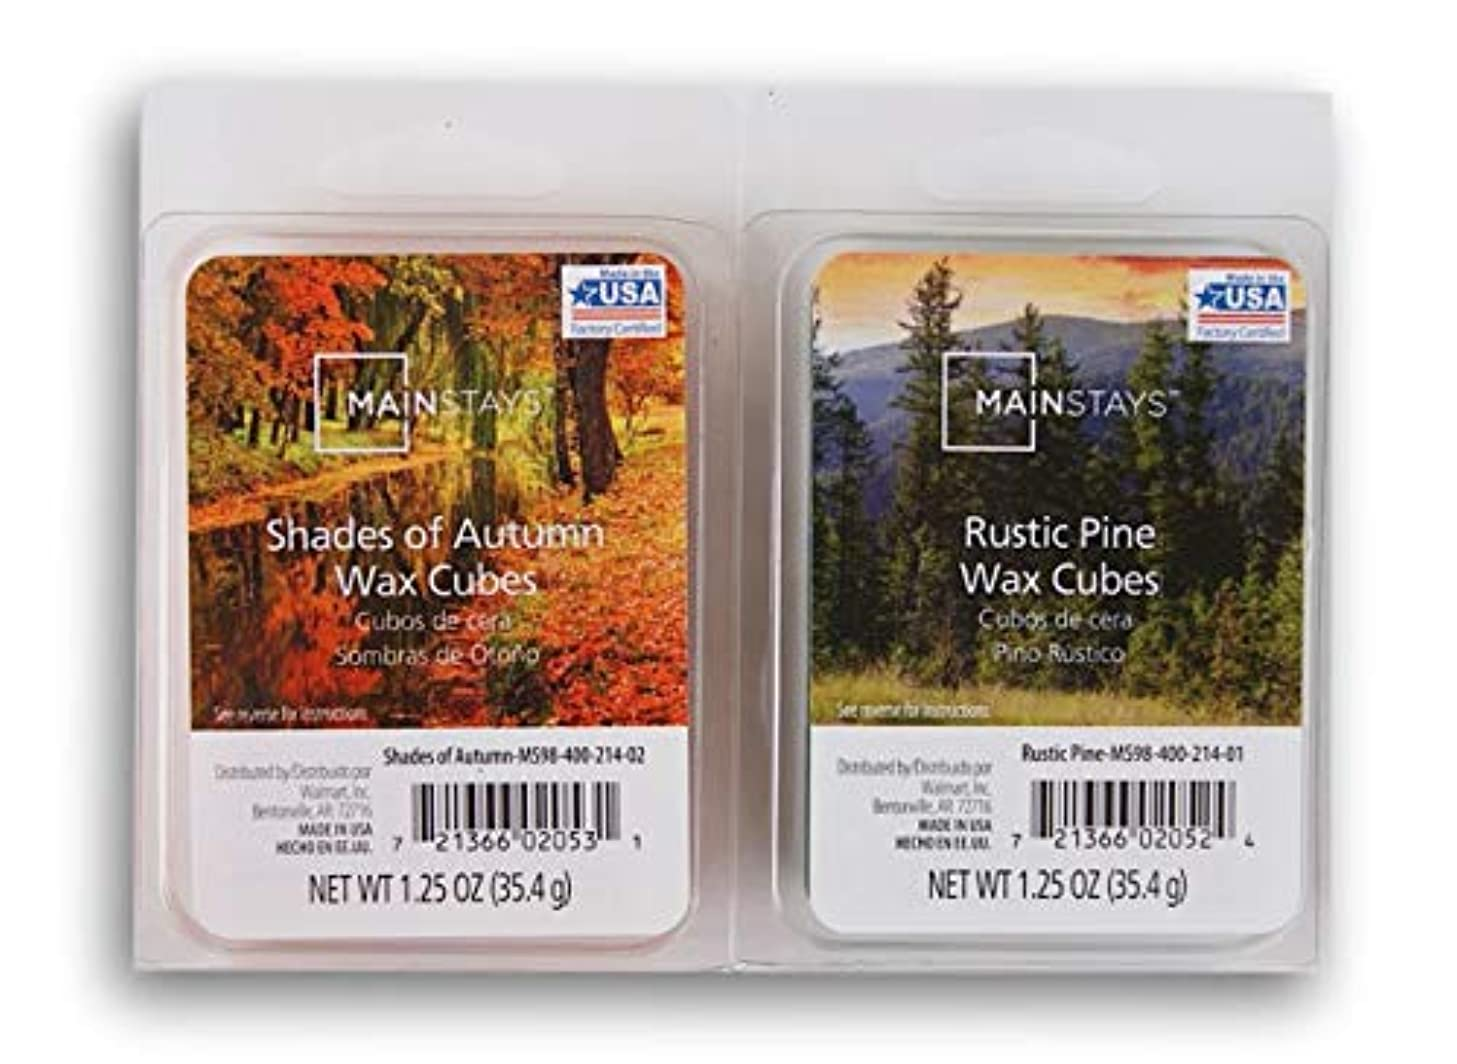 Seasonal Decor Mainstays Autumn Scents Wax Cubes Bundle - Rustic Pine and Shades of Autumn